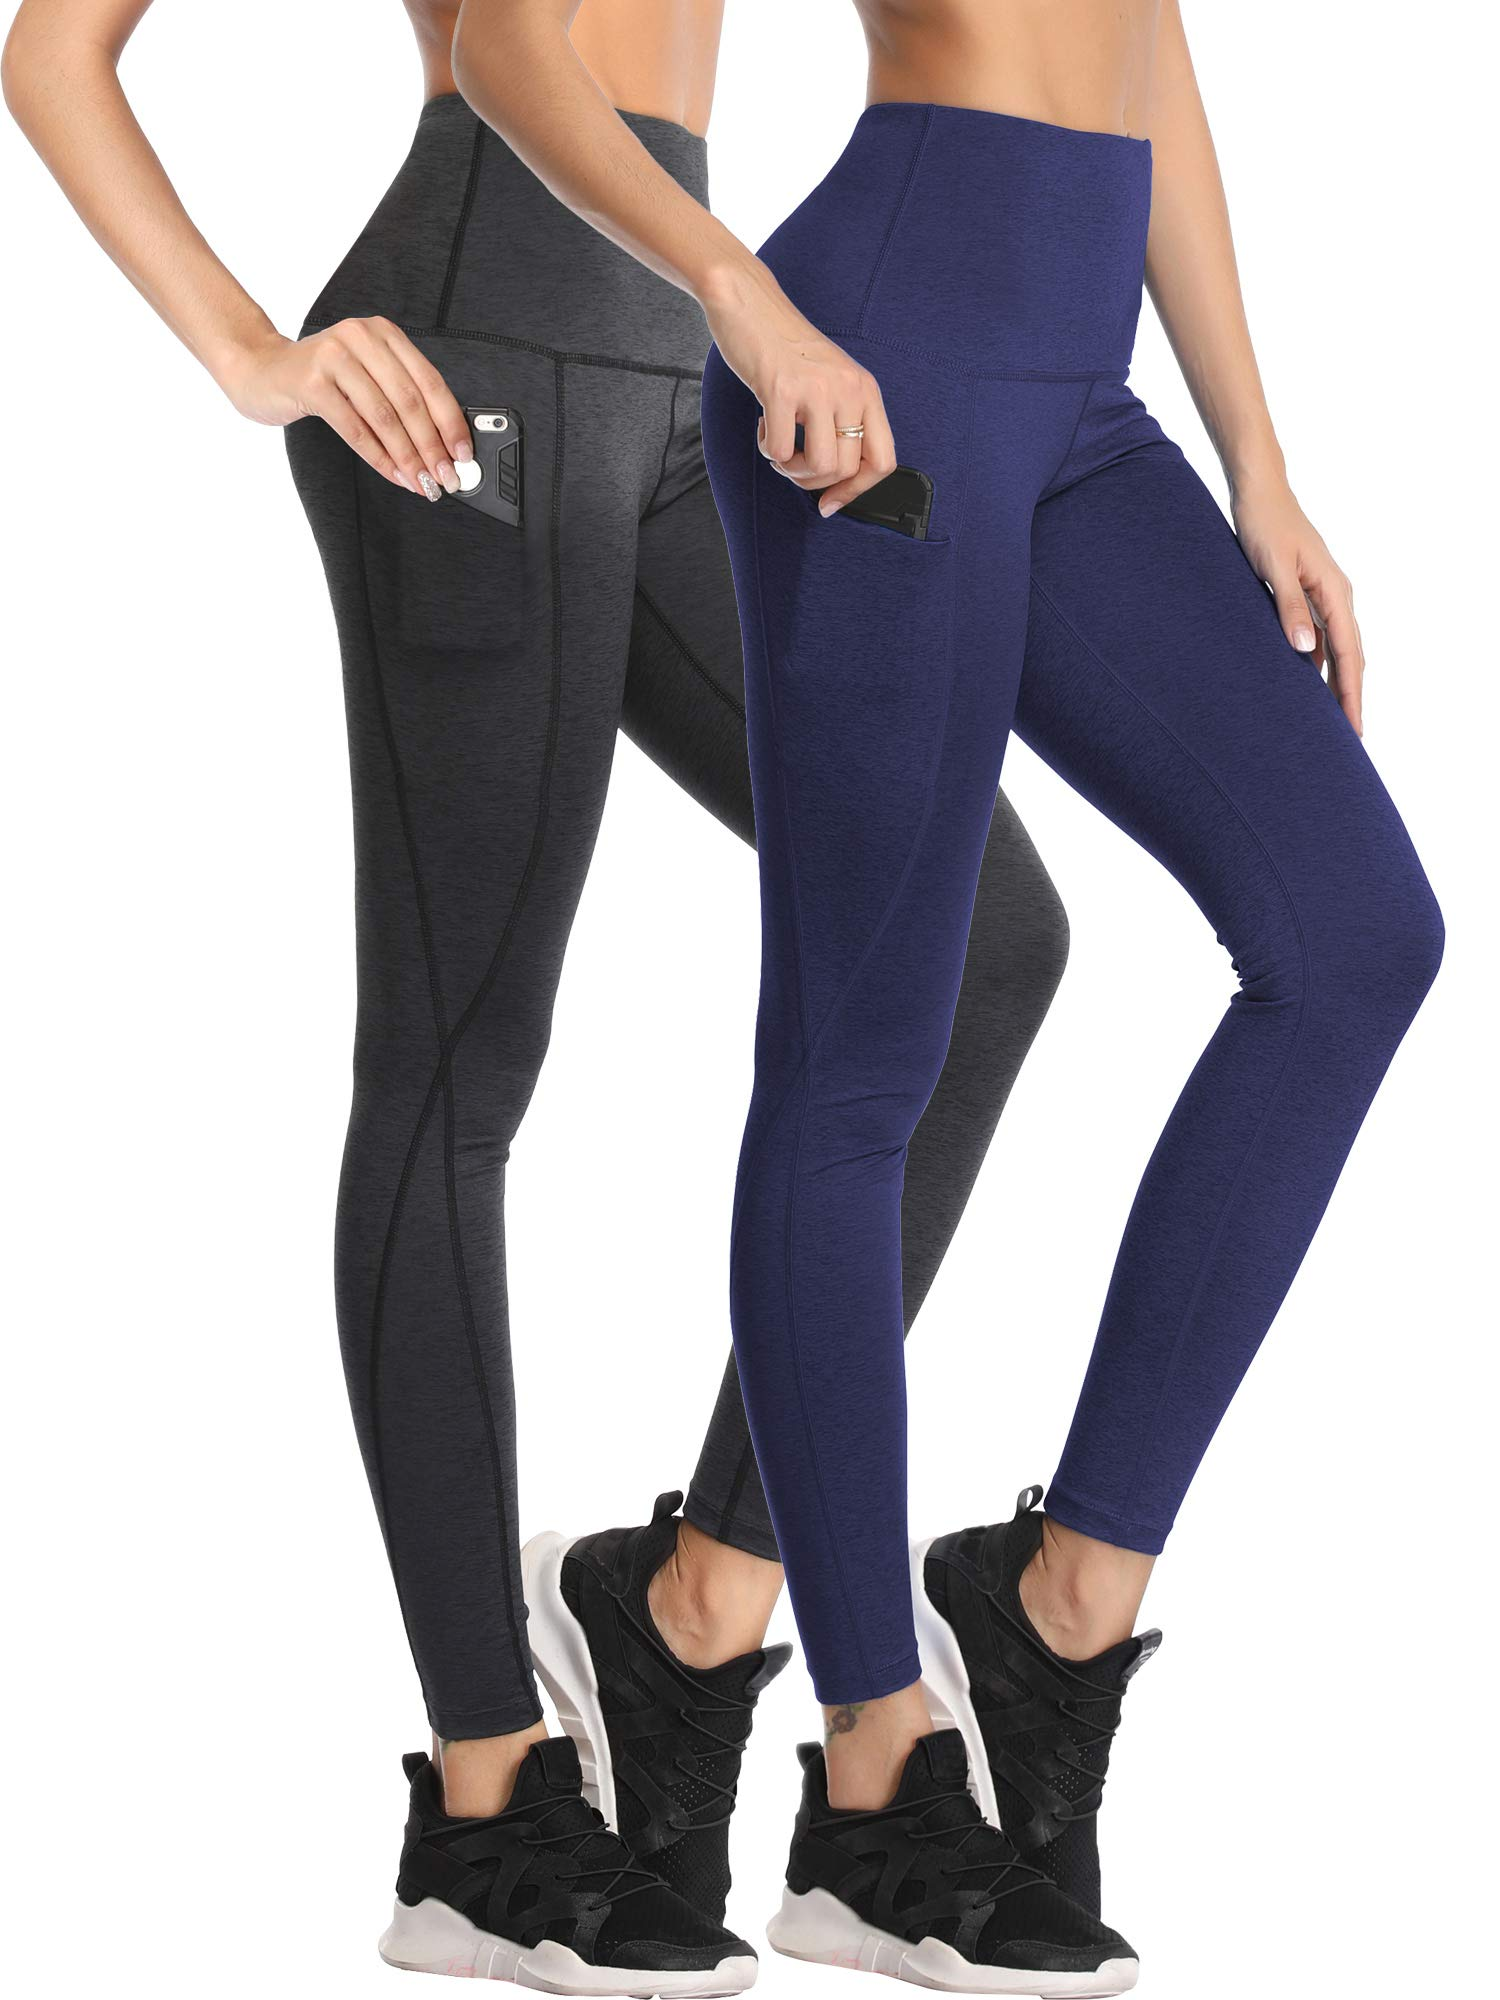 Neleus Women's Yoga Pants Tummy Control High Waist Workout Leggings with 2 Pocket